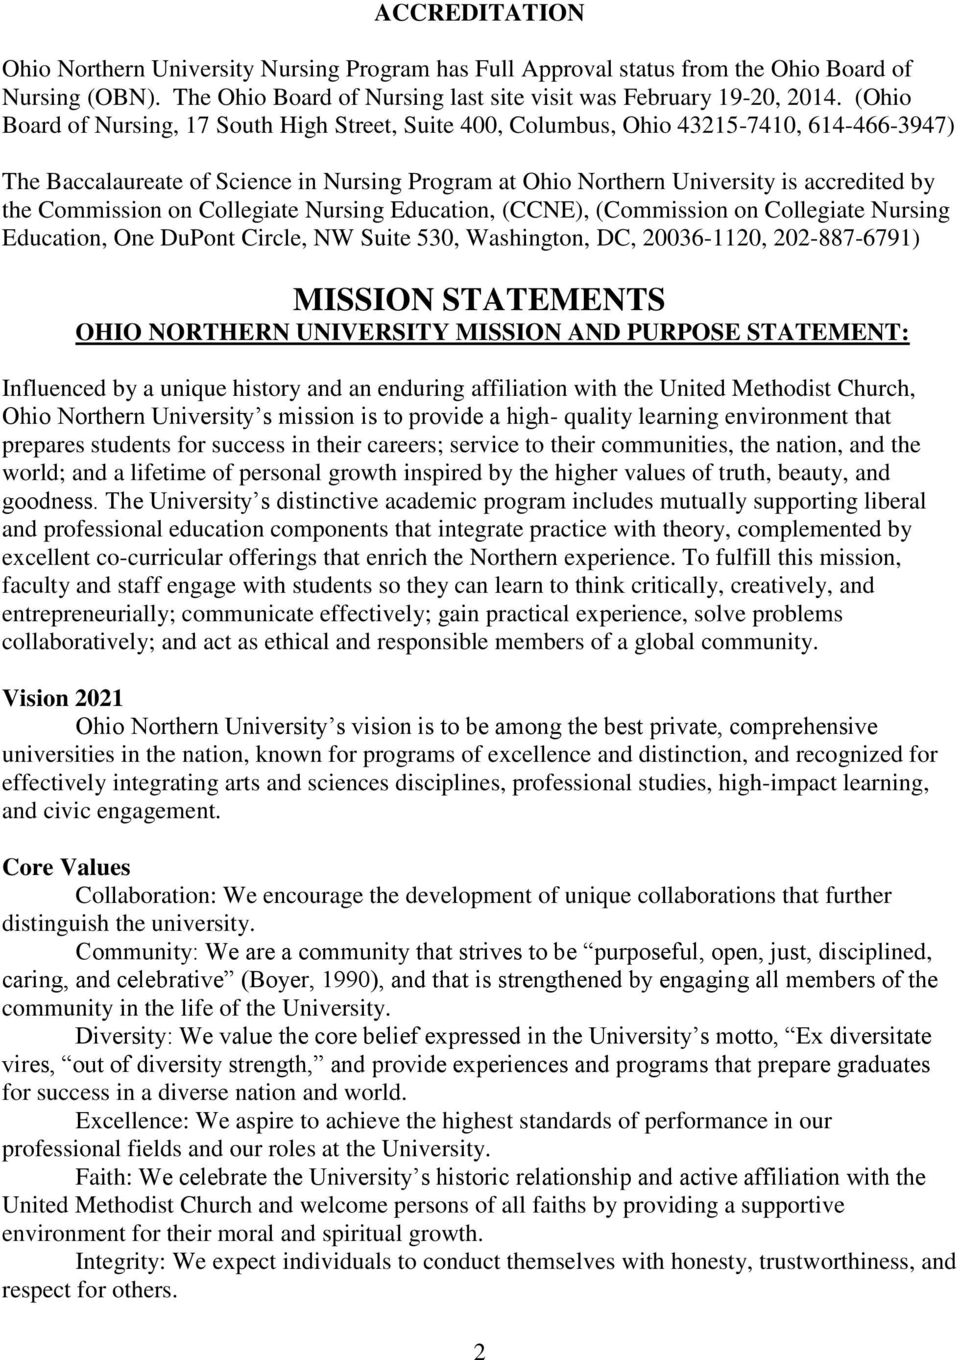 Commission on Collegiate Nursing Education, (CCNE), (Commission on Collegiate Nursing Education, One DuPont Circle, NW Suite 530, Washington, DC, 20036-1120, 202-887-6791) MISSION STATEMENTS OHIO